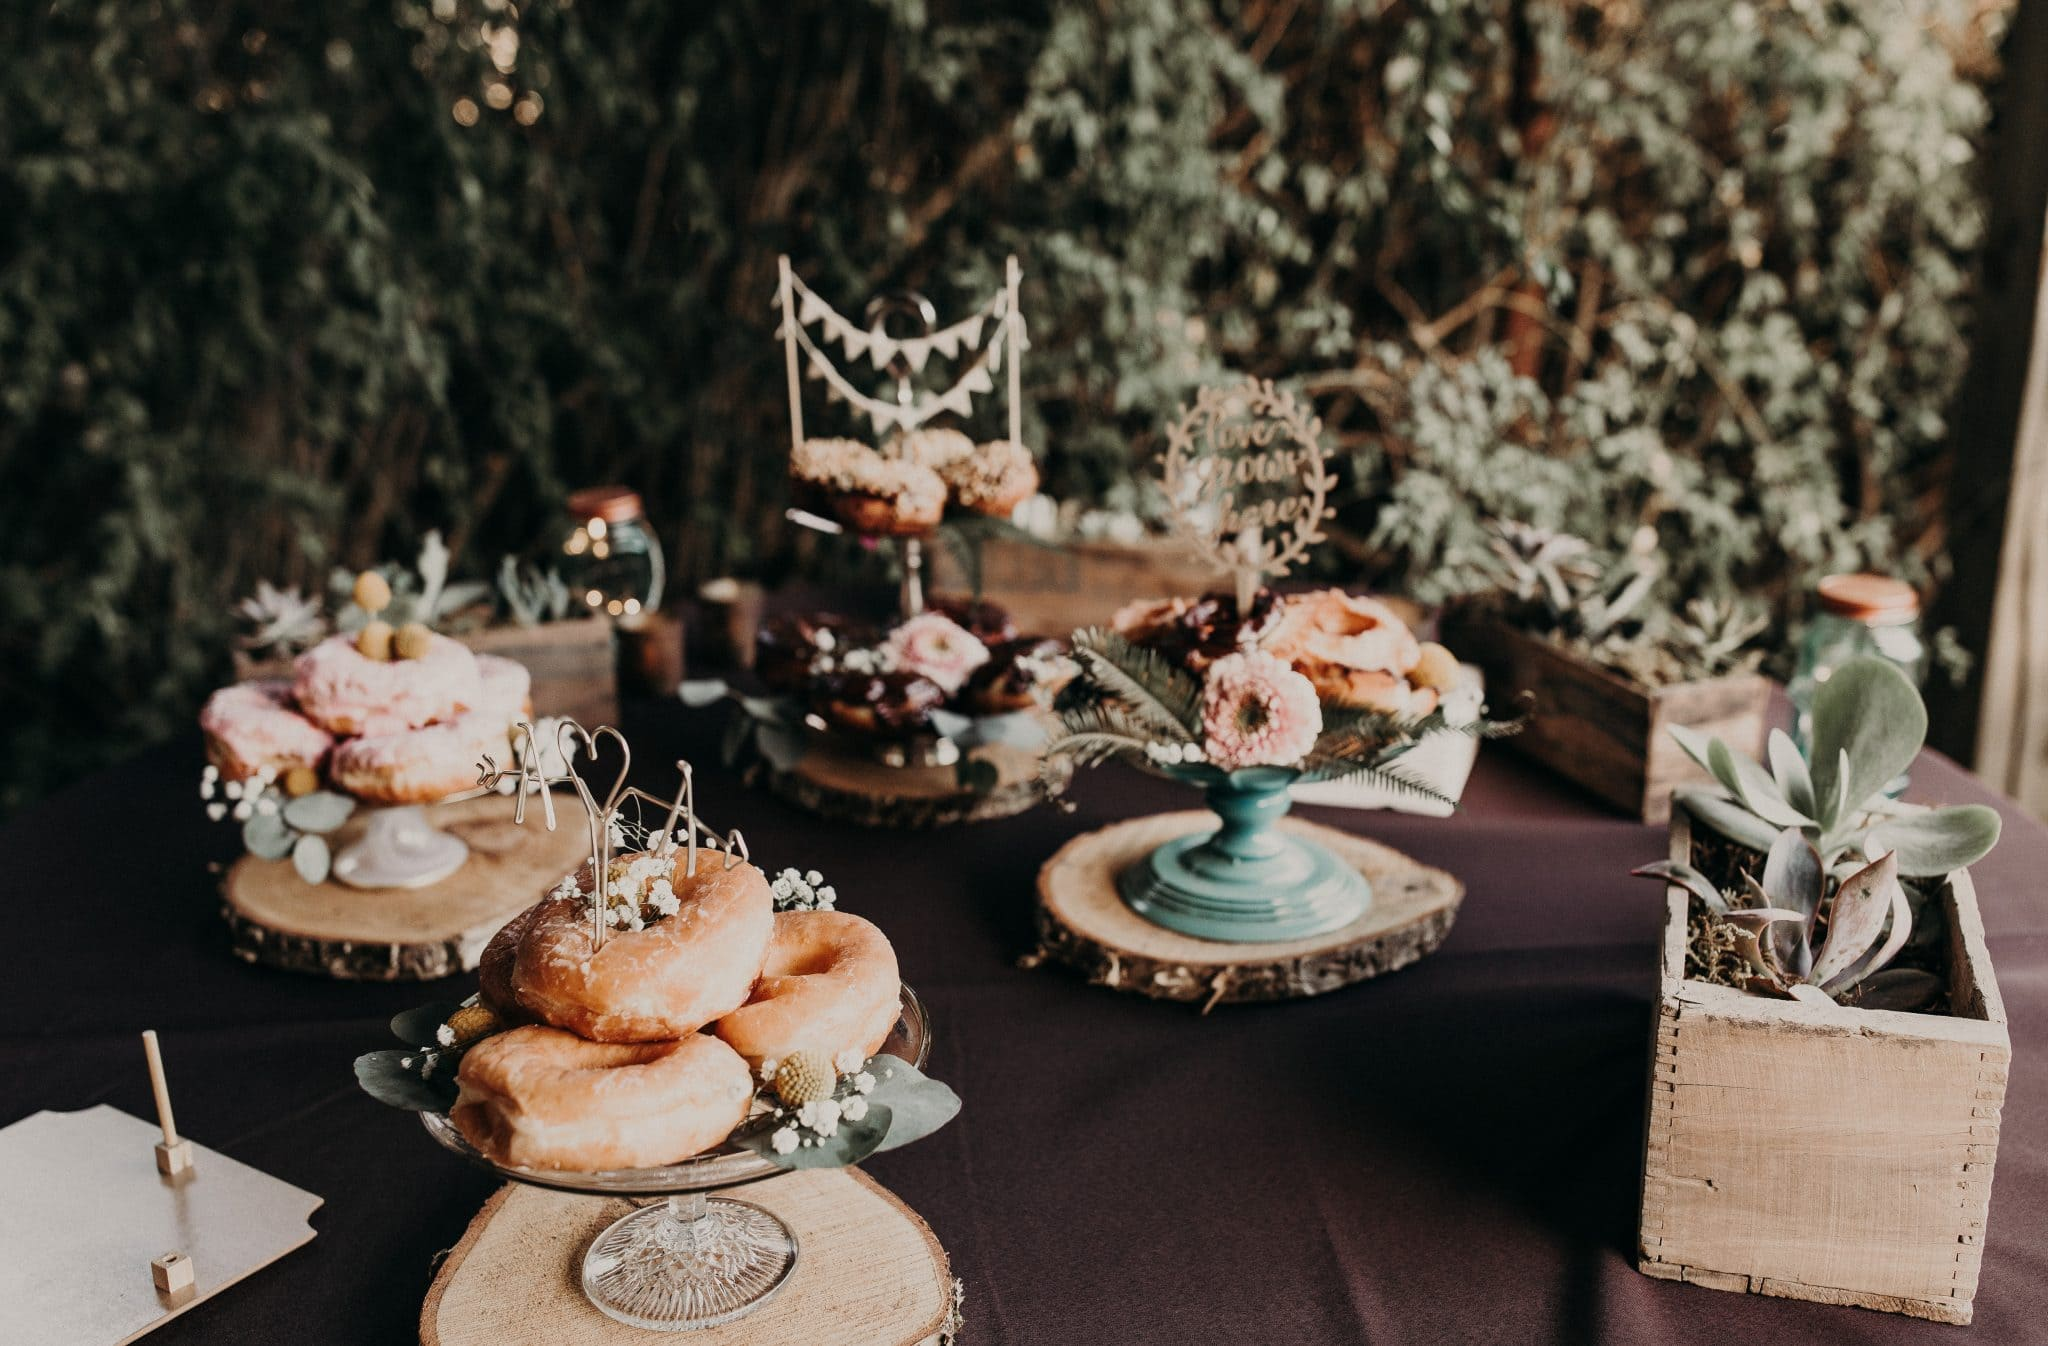 7 Tips for Planning a Successful Vegan Wedding